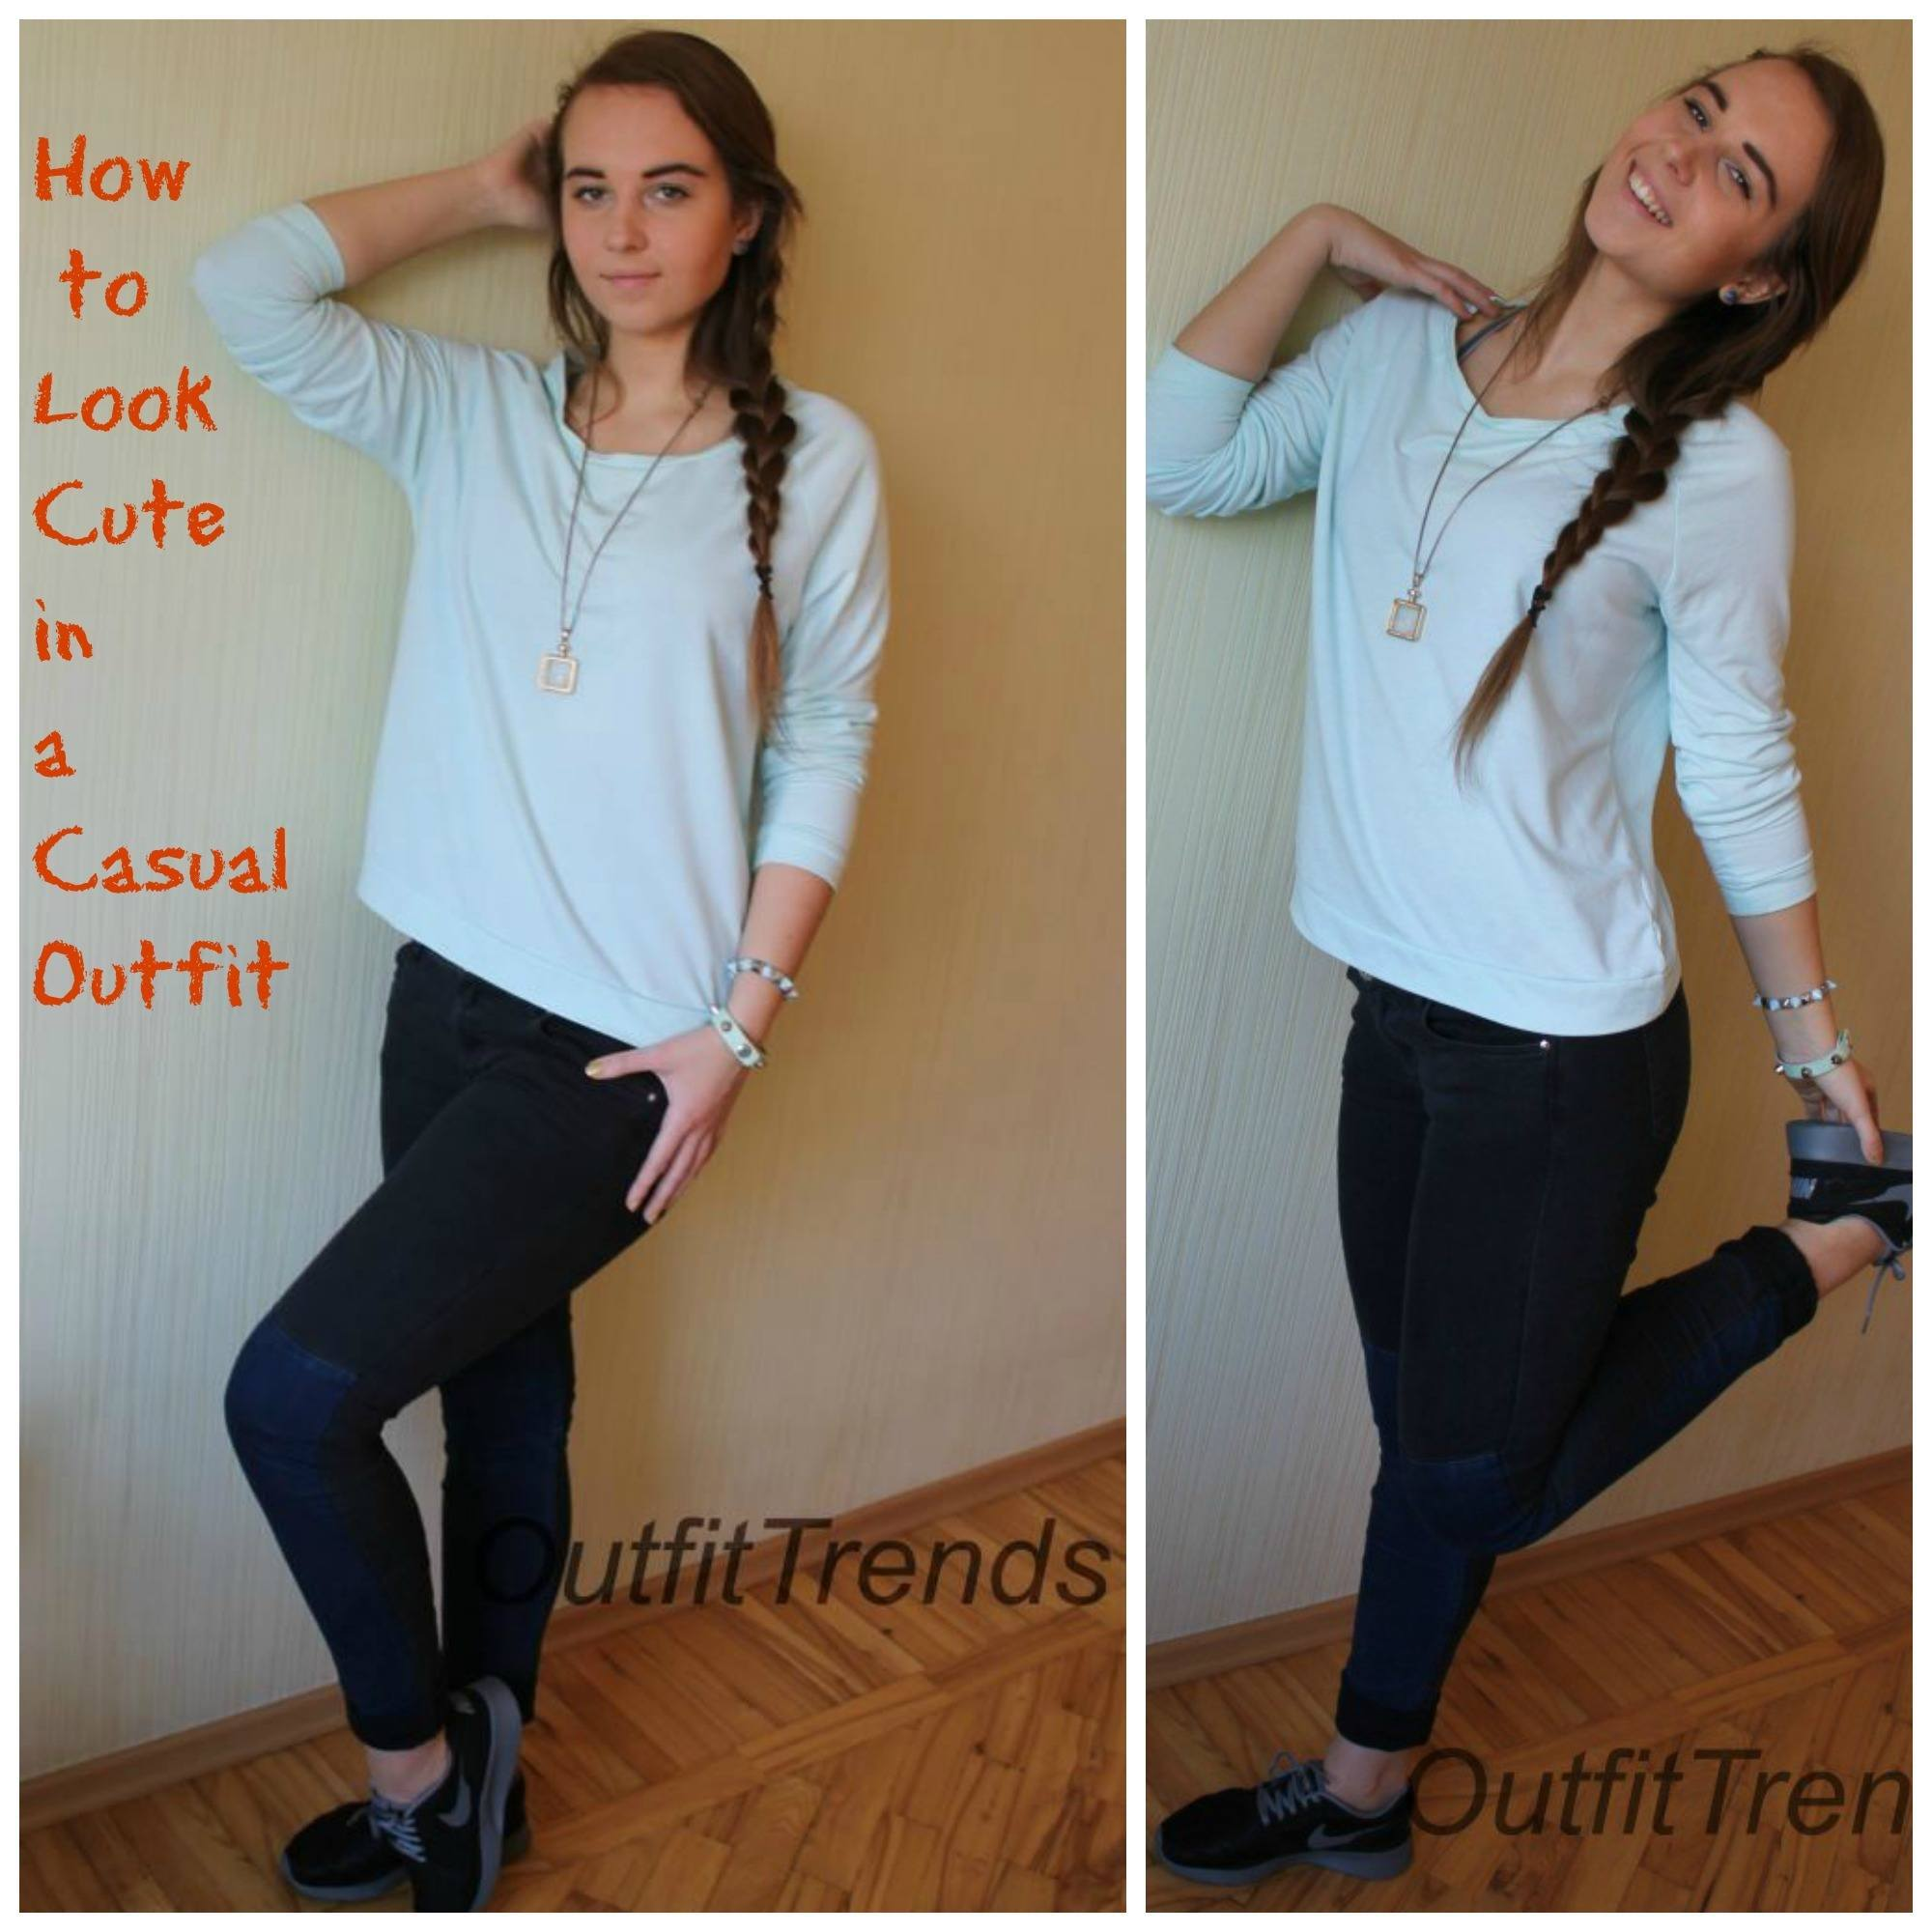 cute-casual How to Look Cute in a Casual Outfit - Fashion Tips for Teens